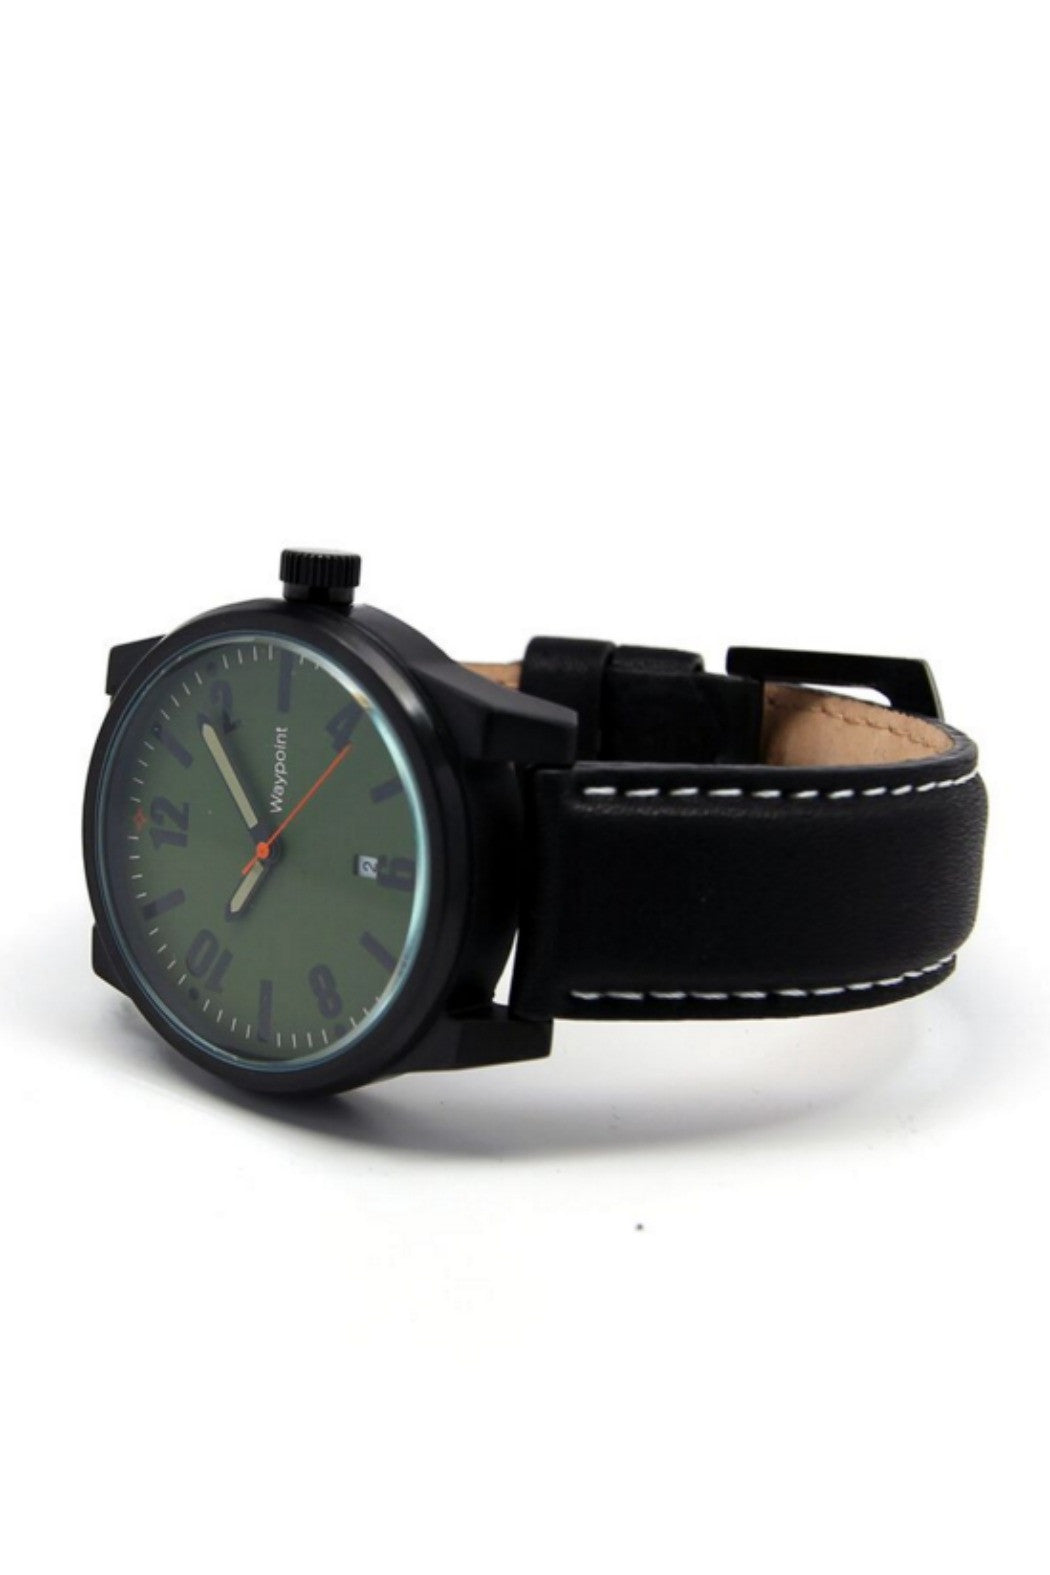 Waypoint Watches - Traveler Watch Forest Green on Black Leather - R+D Hipster Emporium | Womens & Mens Clothing - 3